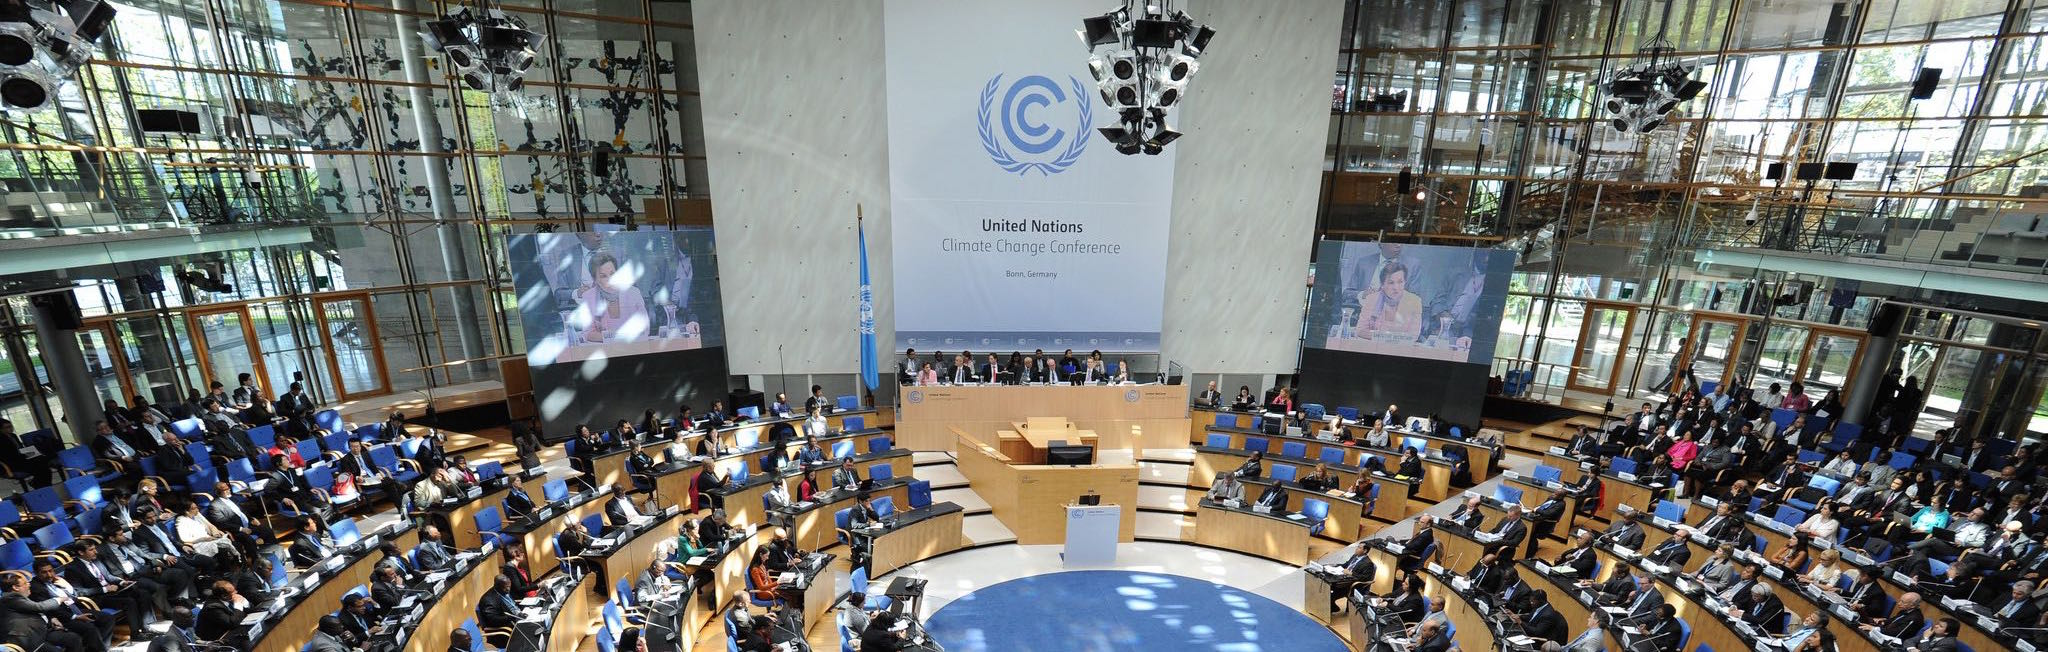 US, EU Object to Including Pre-2020 Climate Action on COP23 Agenda